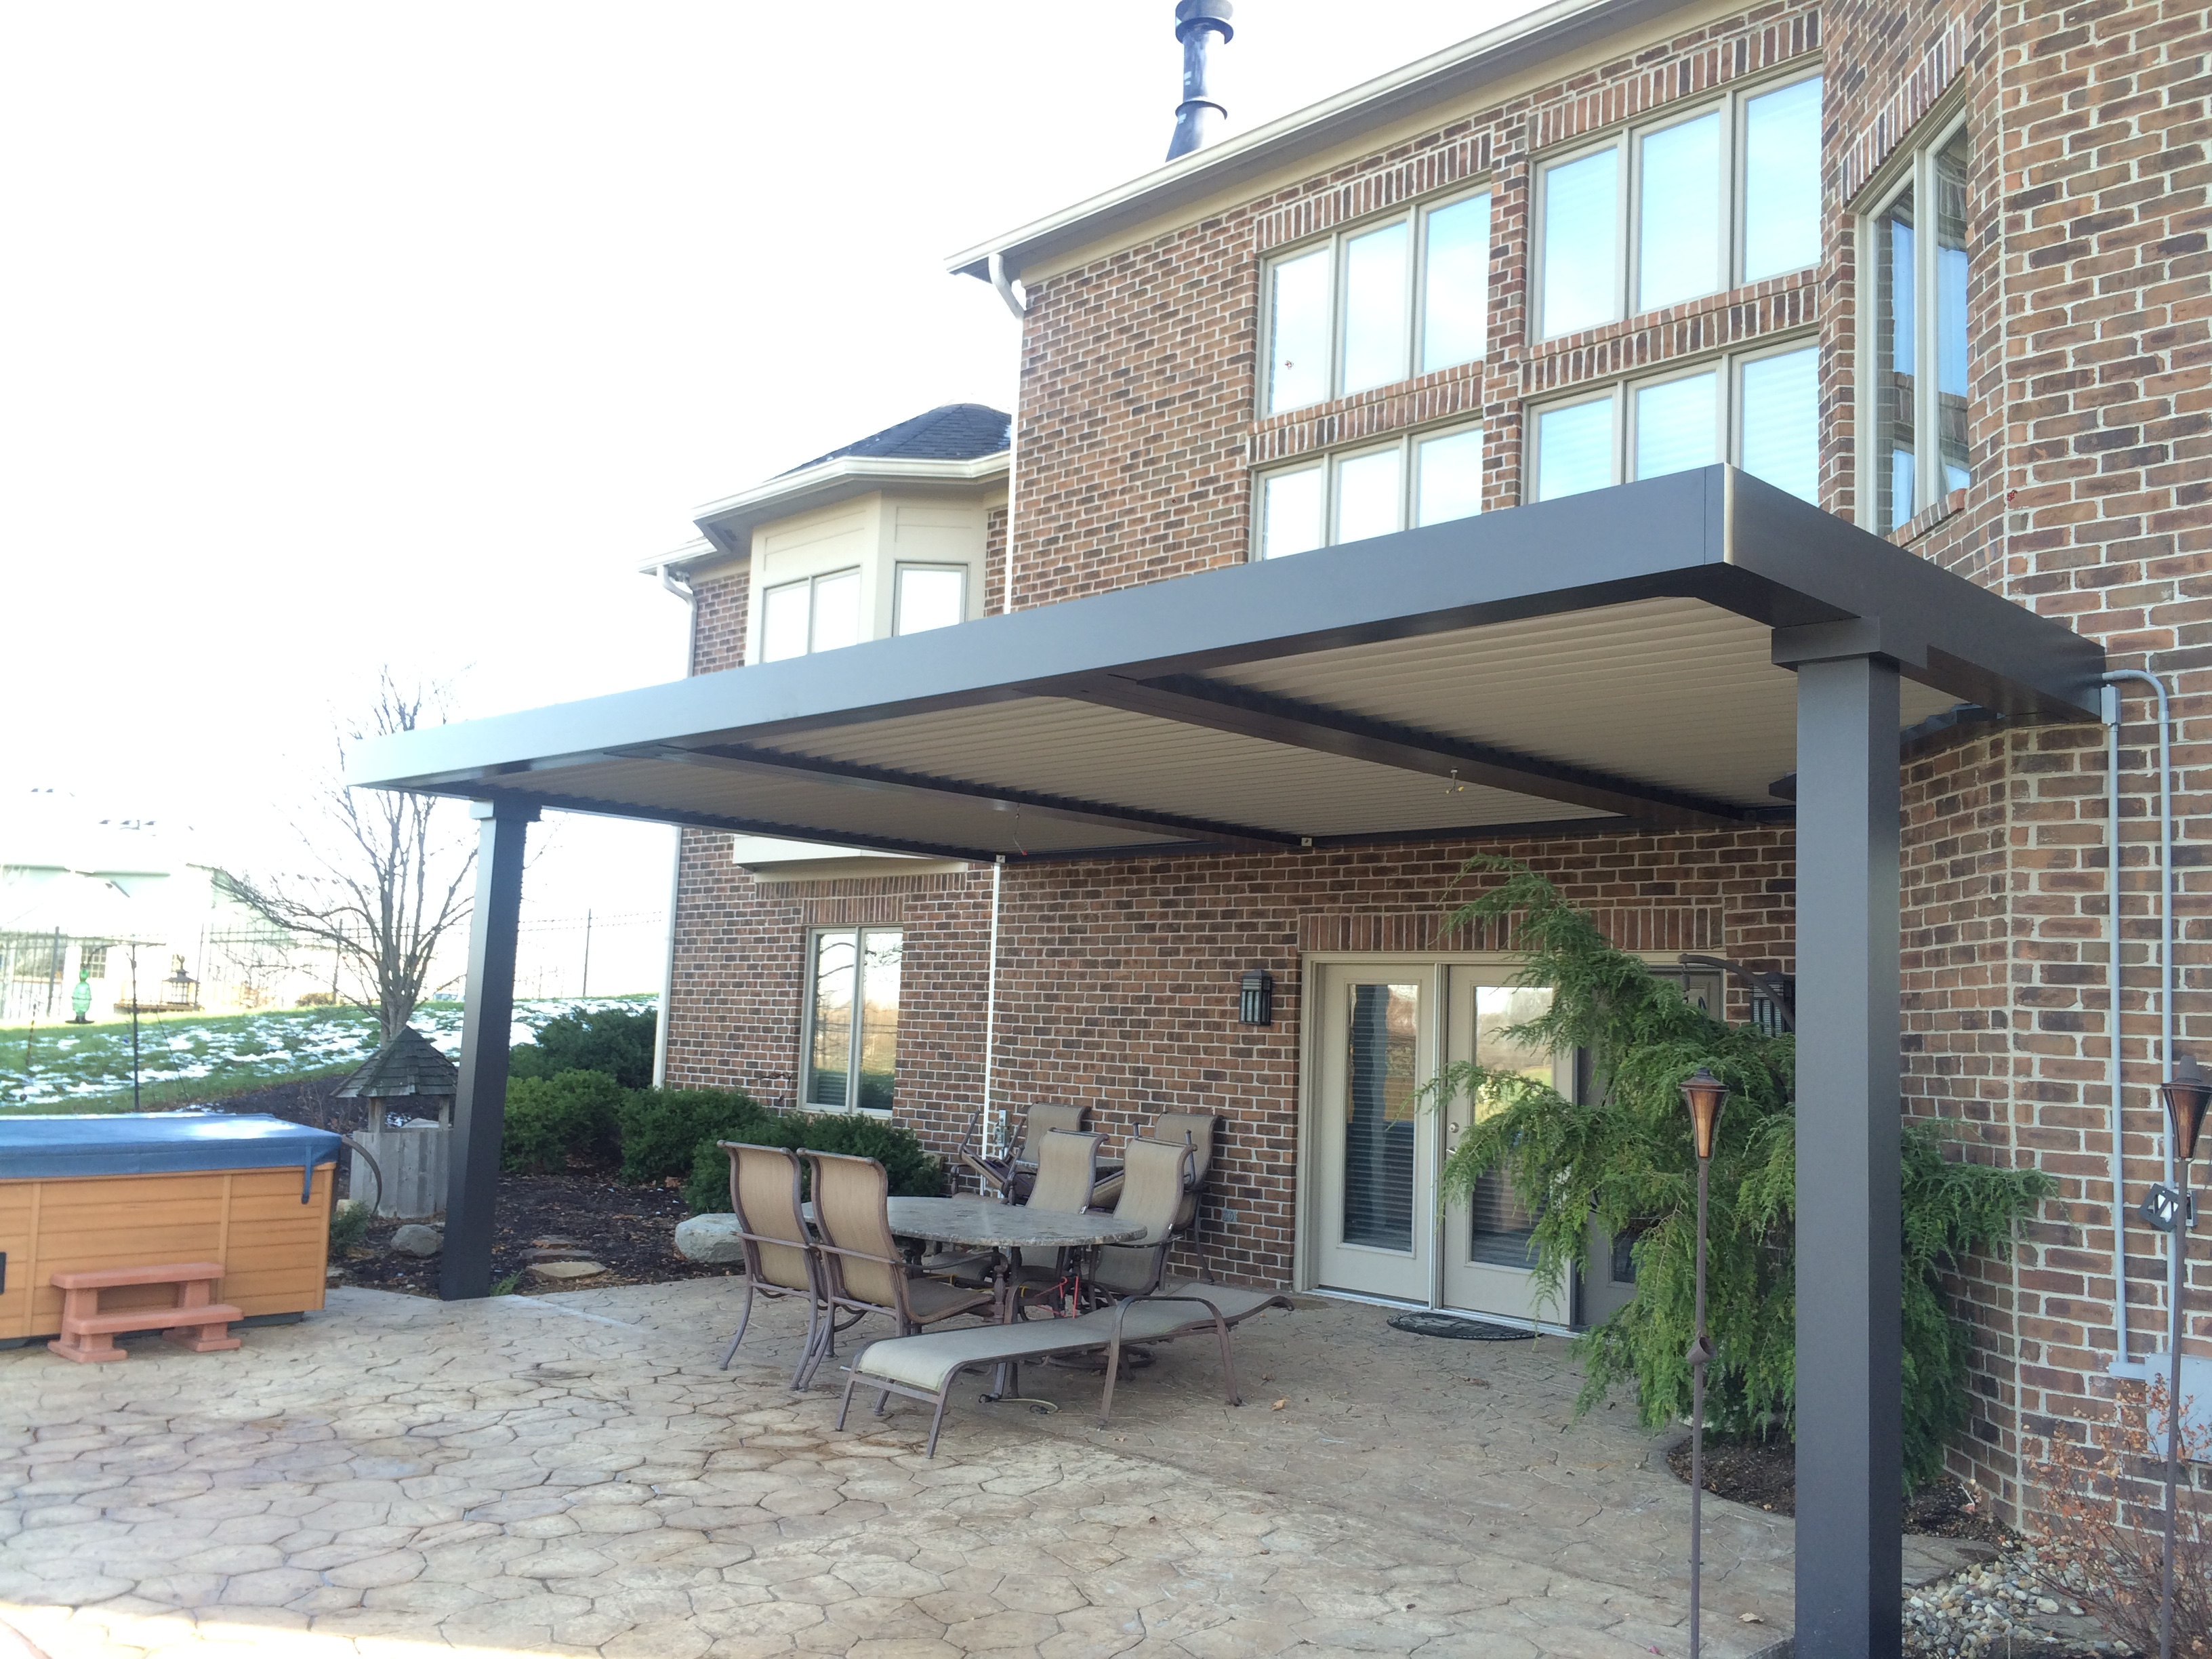 Westfield, IN - Patio cover - Attached